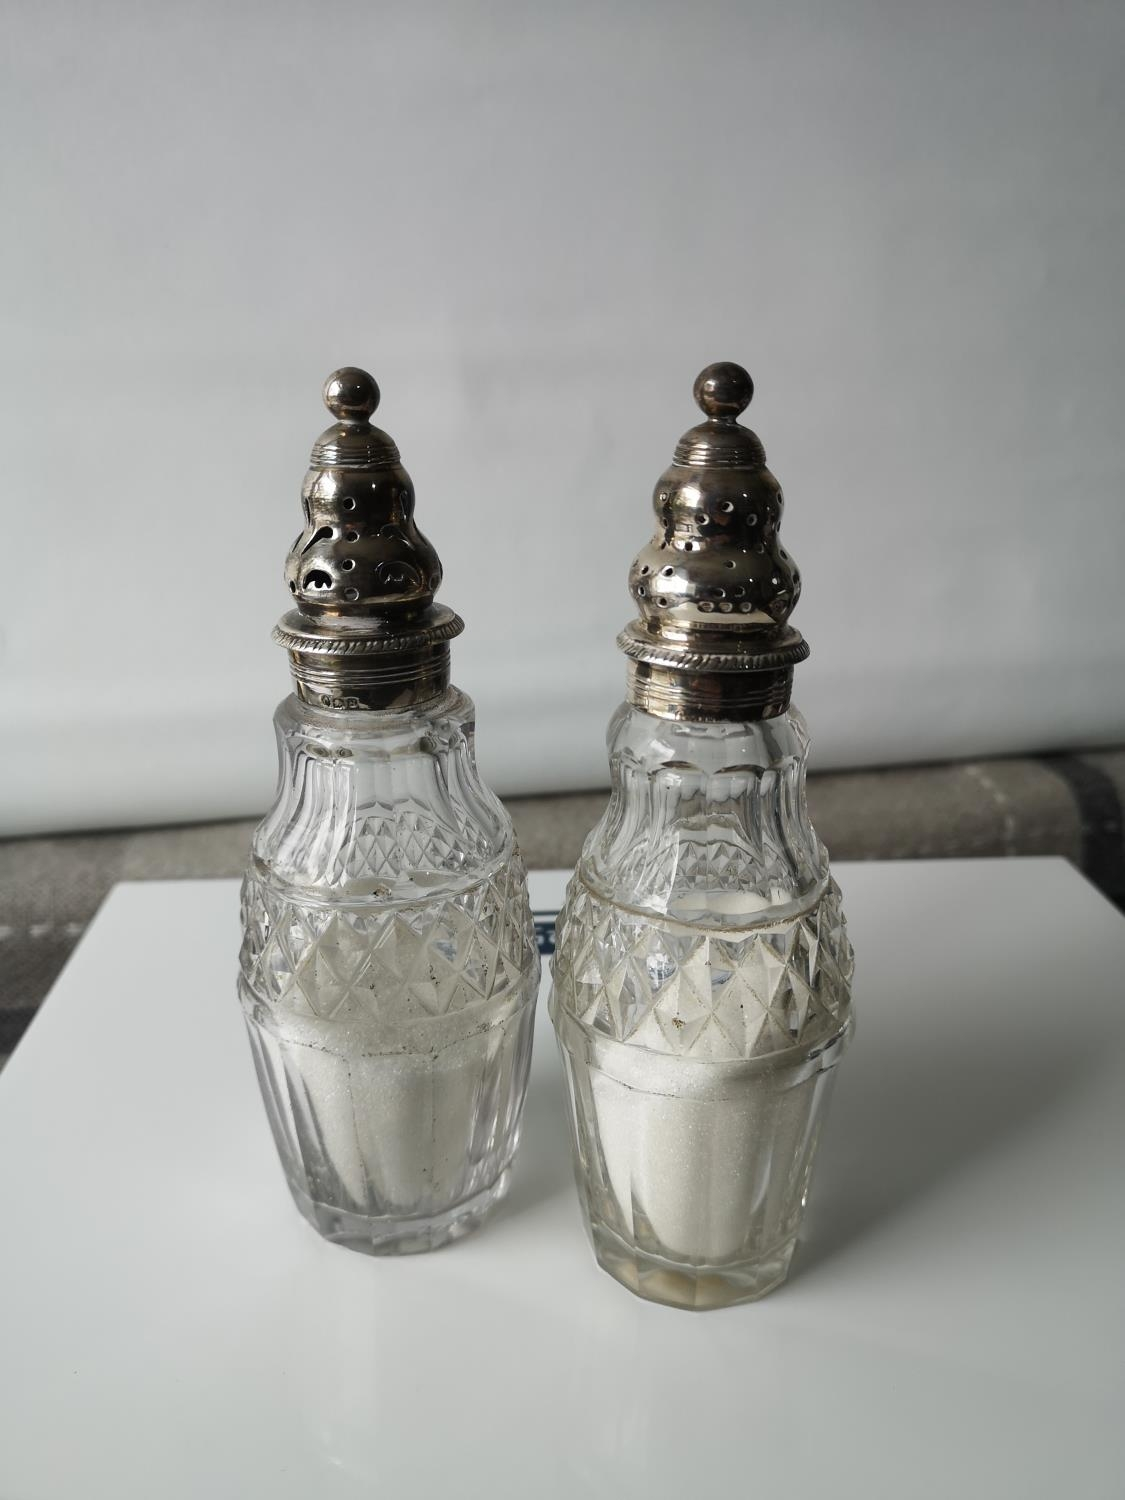 Two silver top & glass body sugar shakers [16cm in height]